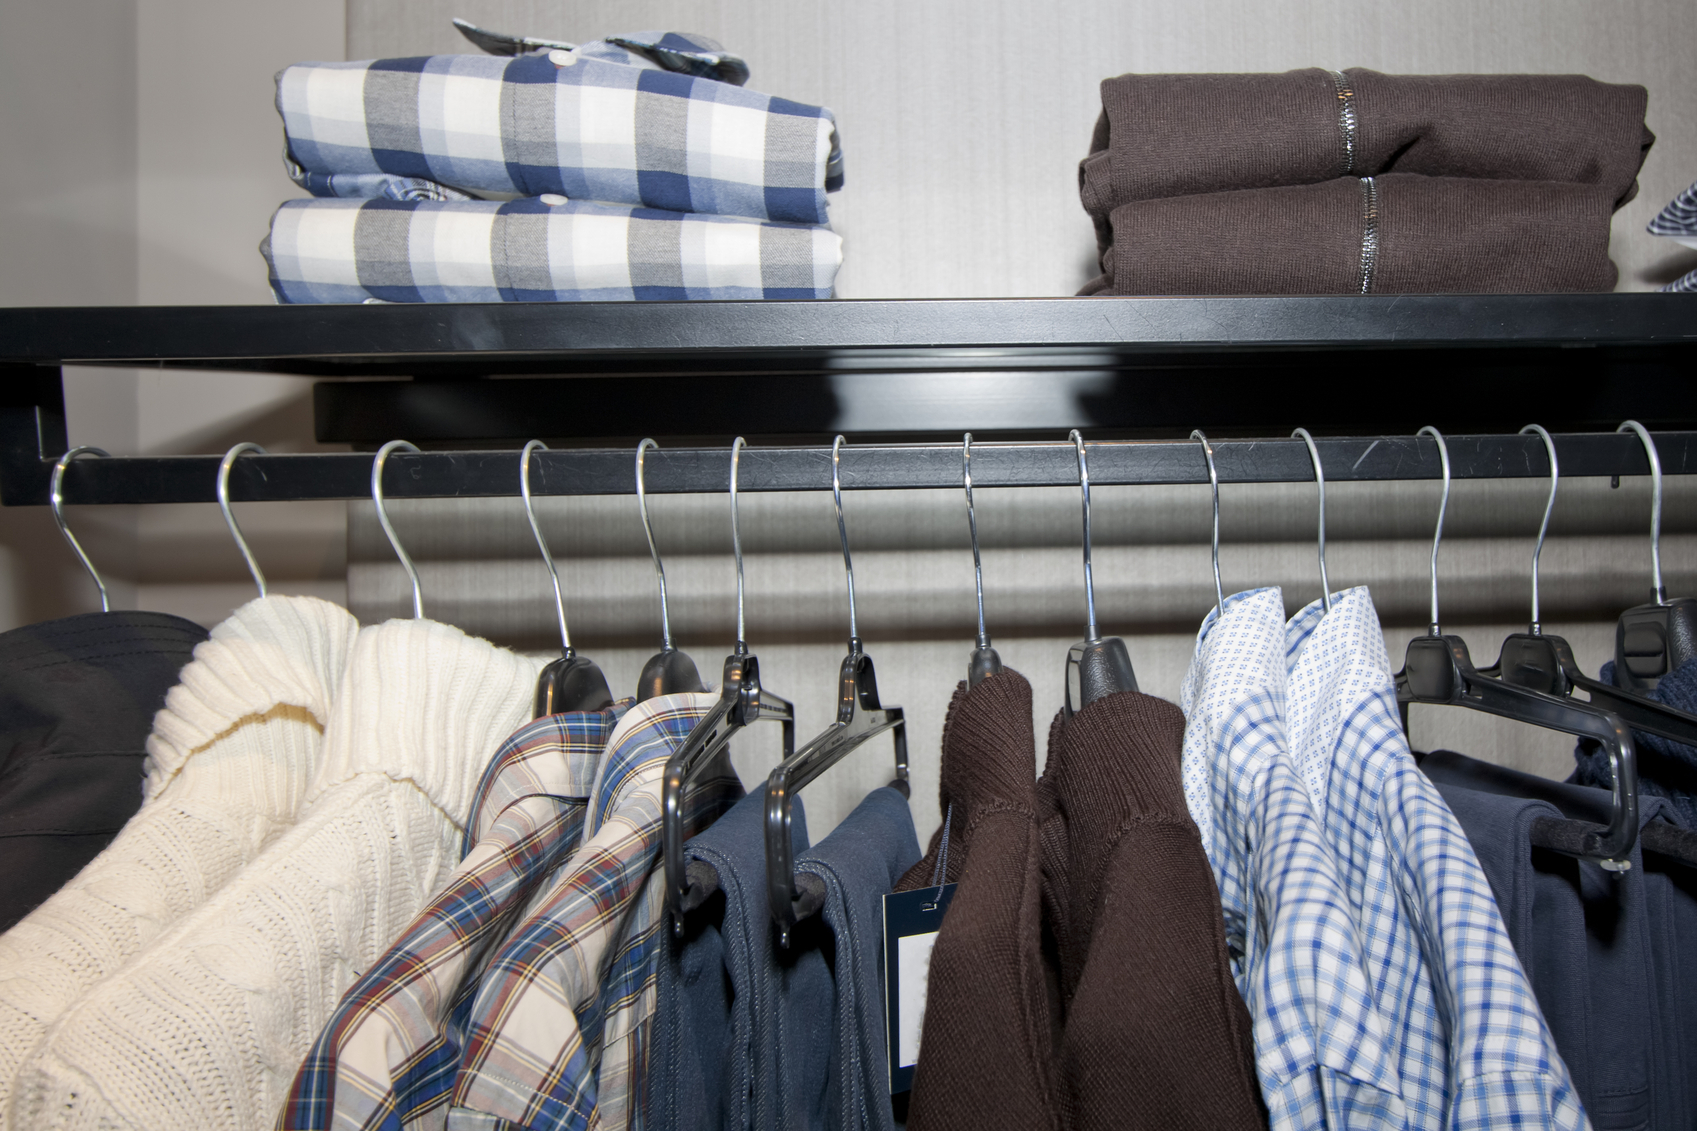 Close up of row of male clothes on hangers and folded on rack. Shirts, jeans,trousers,pullovers.